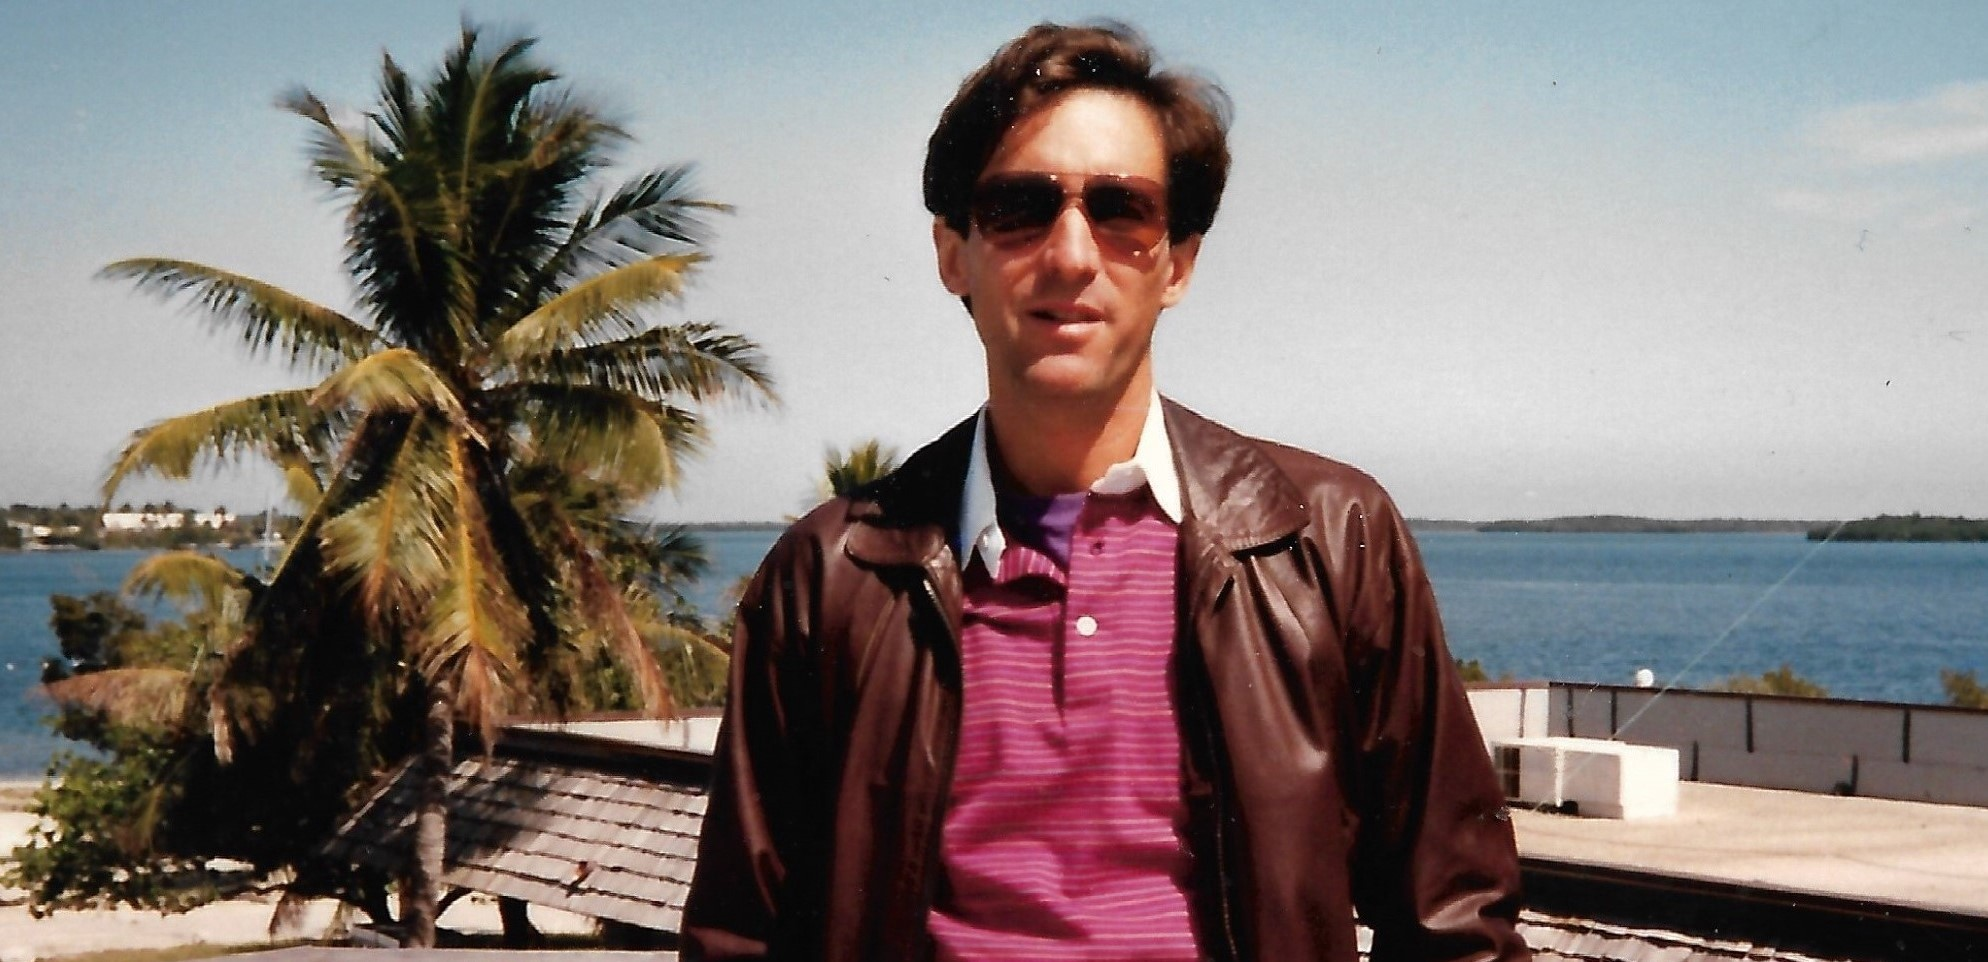 Vintage photo of a light-skinned man with brown hair, wearing aviator shades, a leather jacket, and a polo t-shirt, standing in front of a palm tree and the ocean.